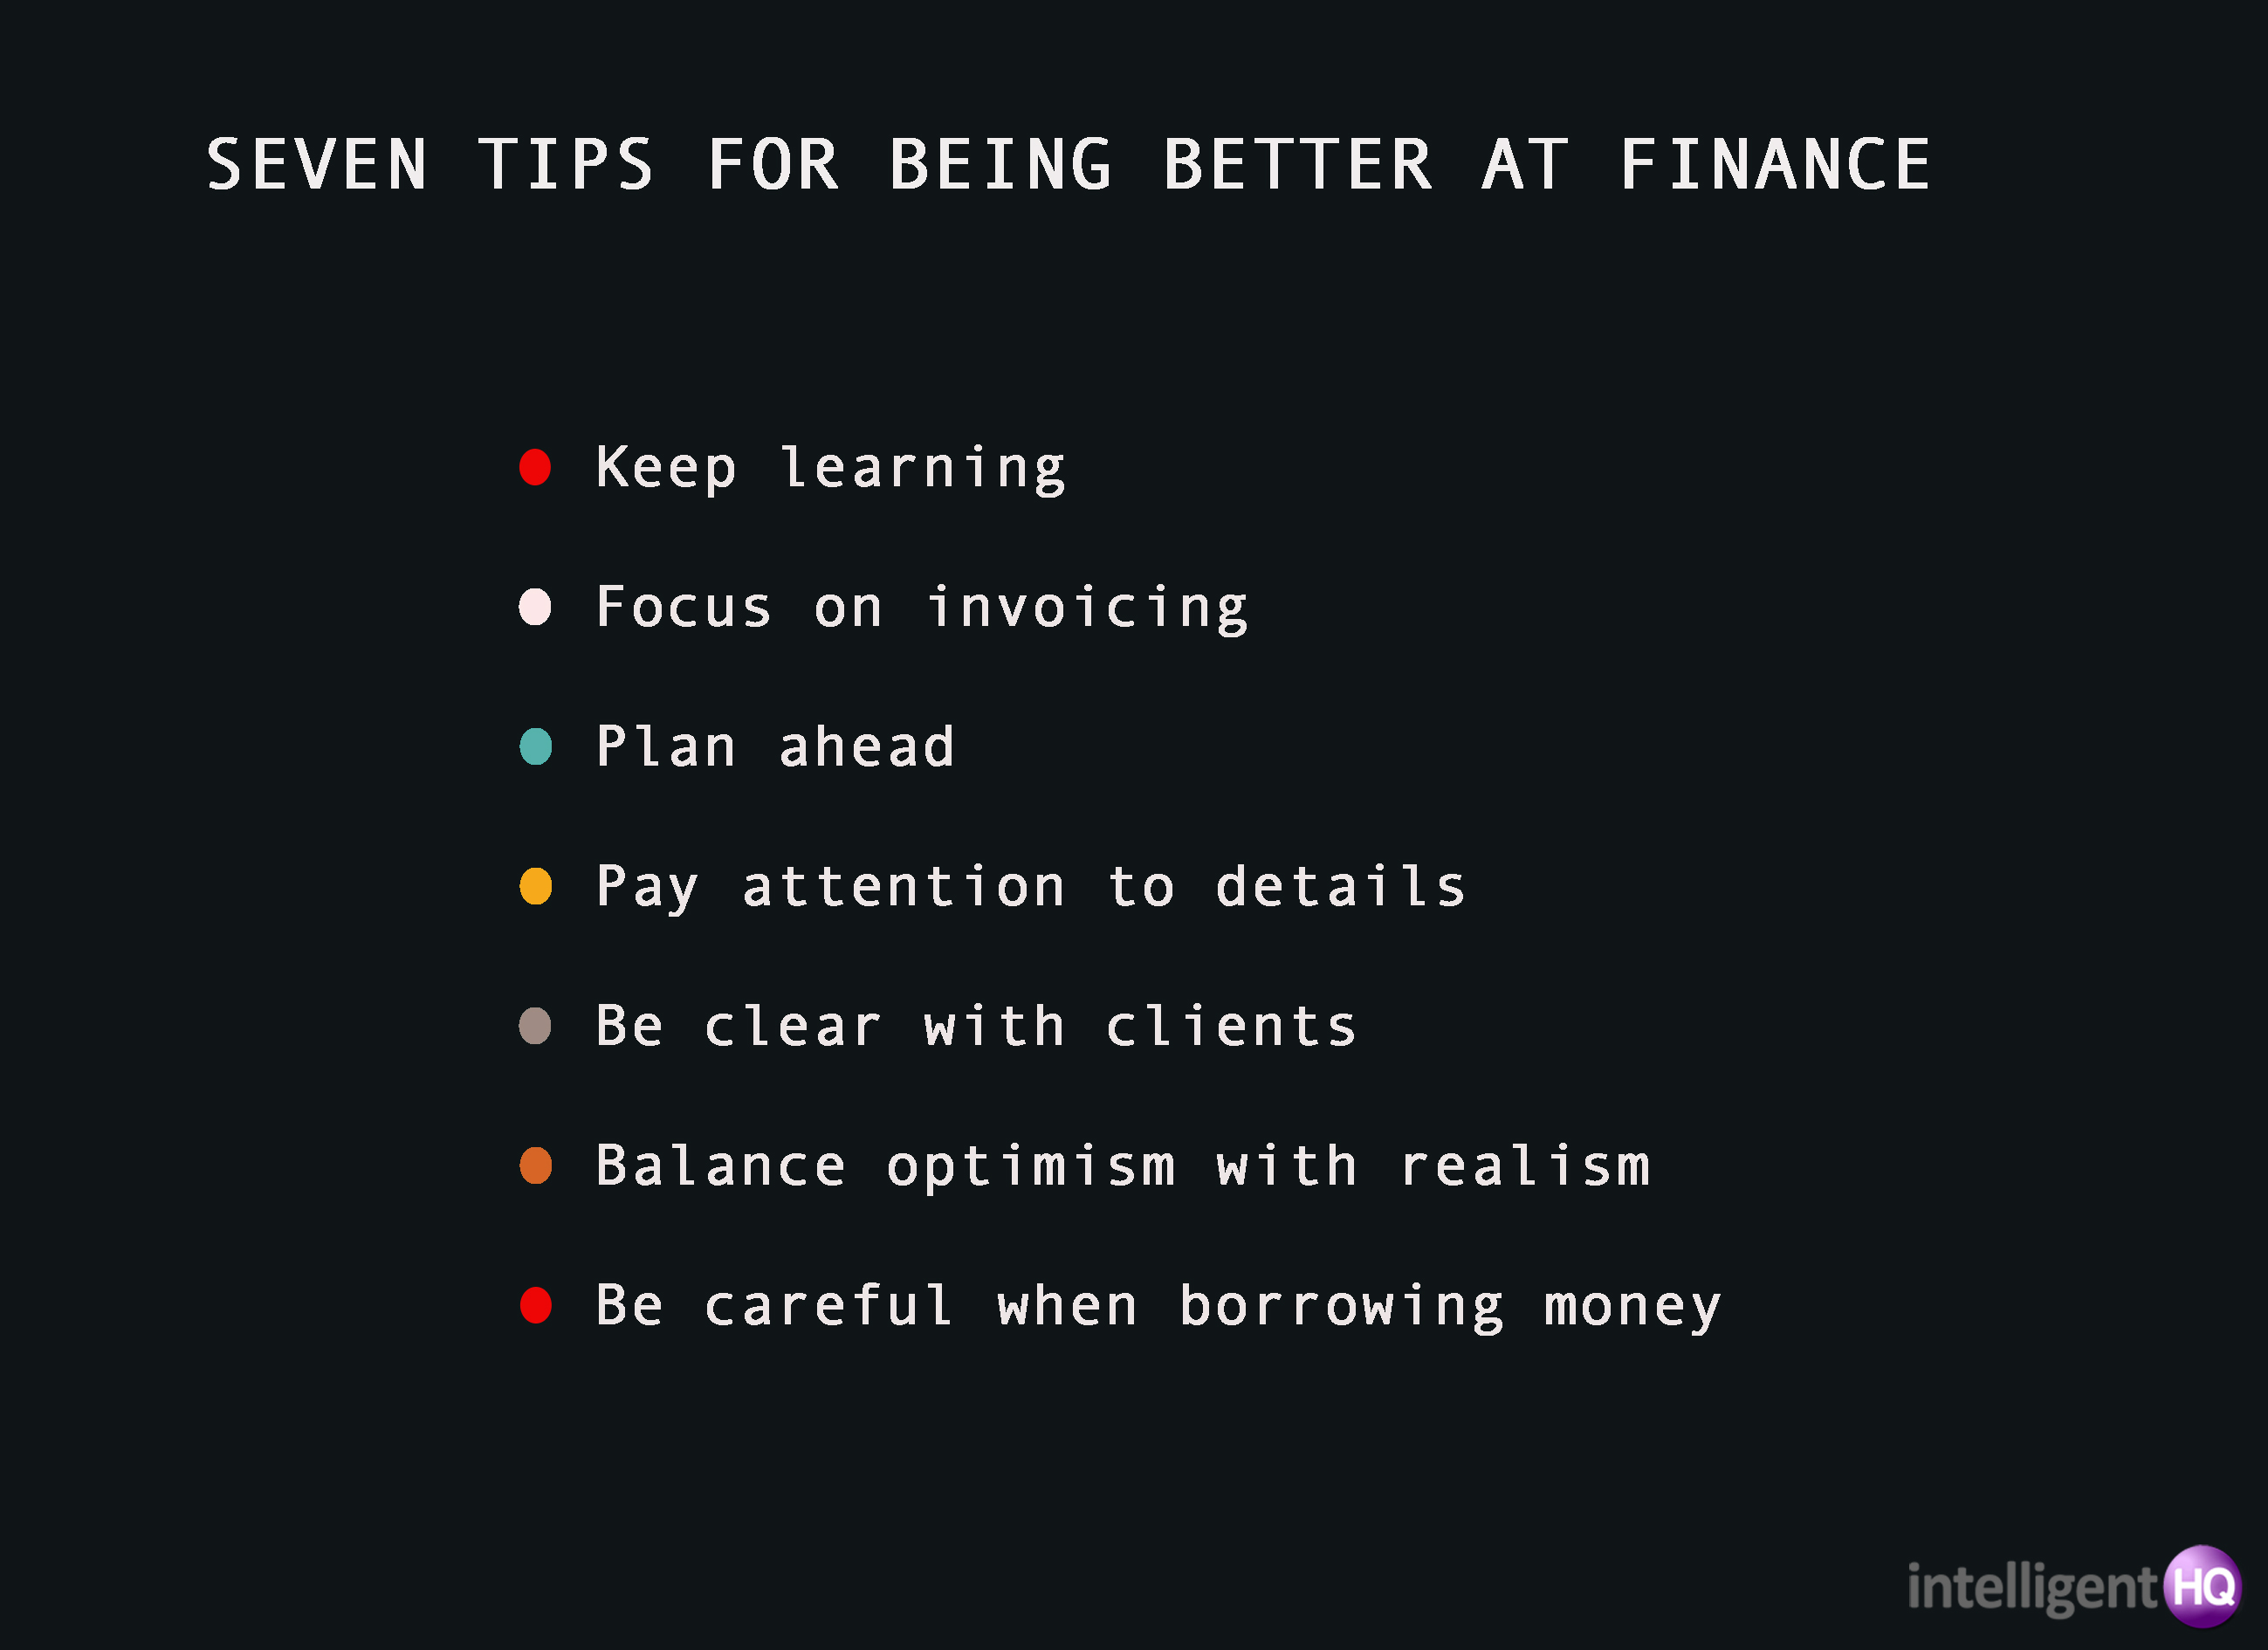 7 tips for being better at finance Intelligenthq